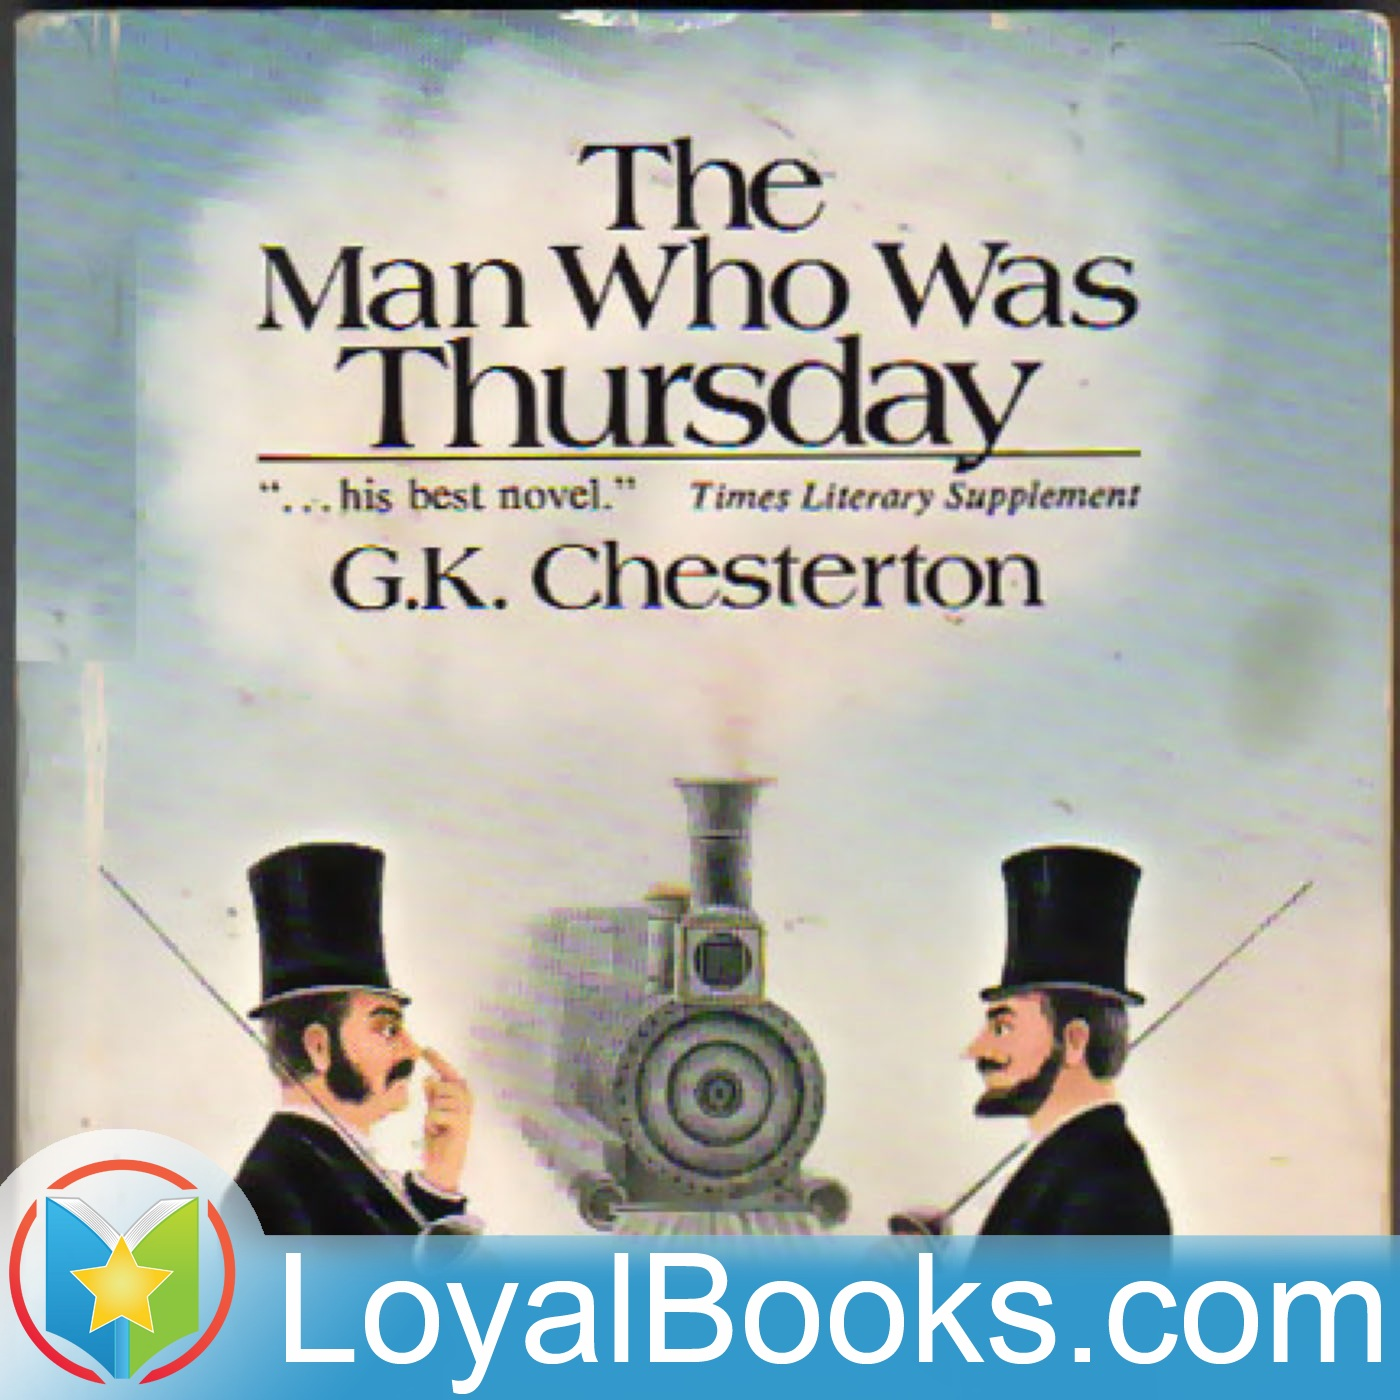 <![CDATA[The Man Who was Thursday by G. K. Chesterton]]>